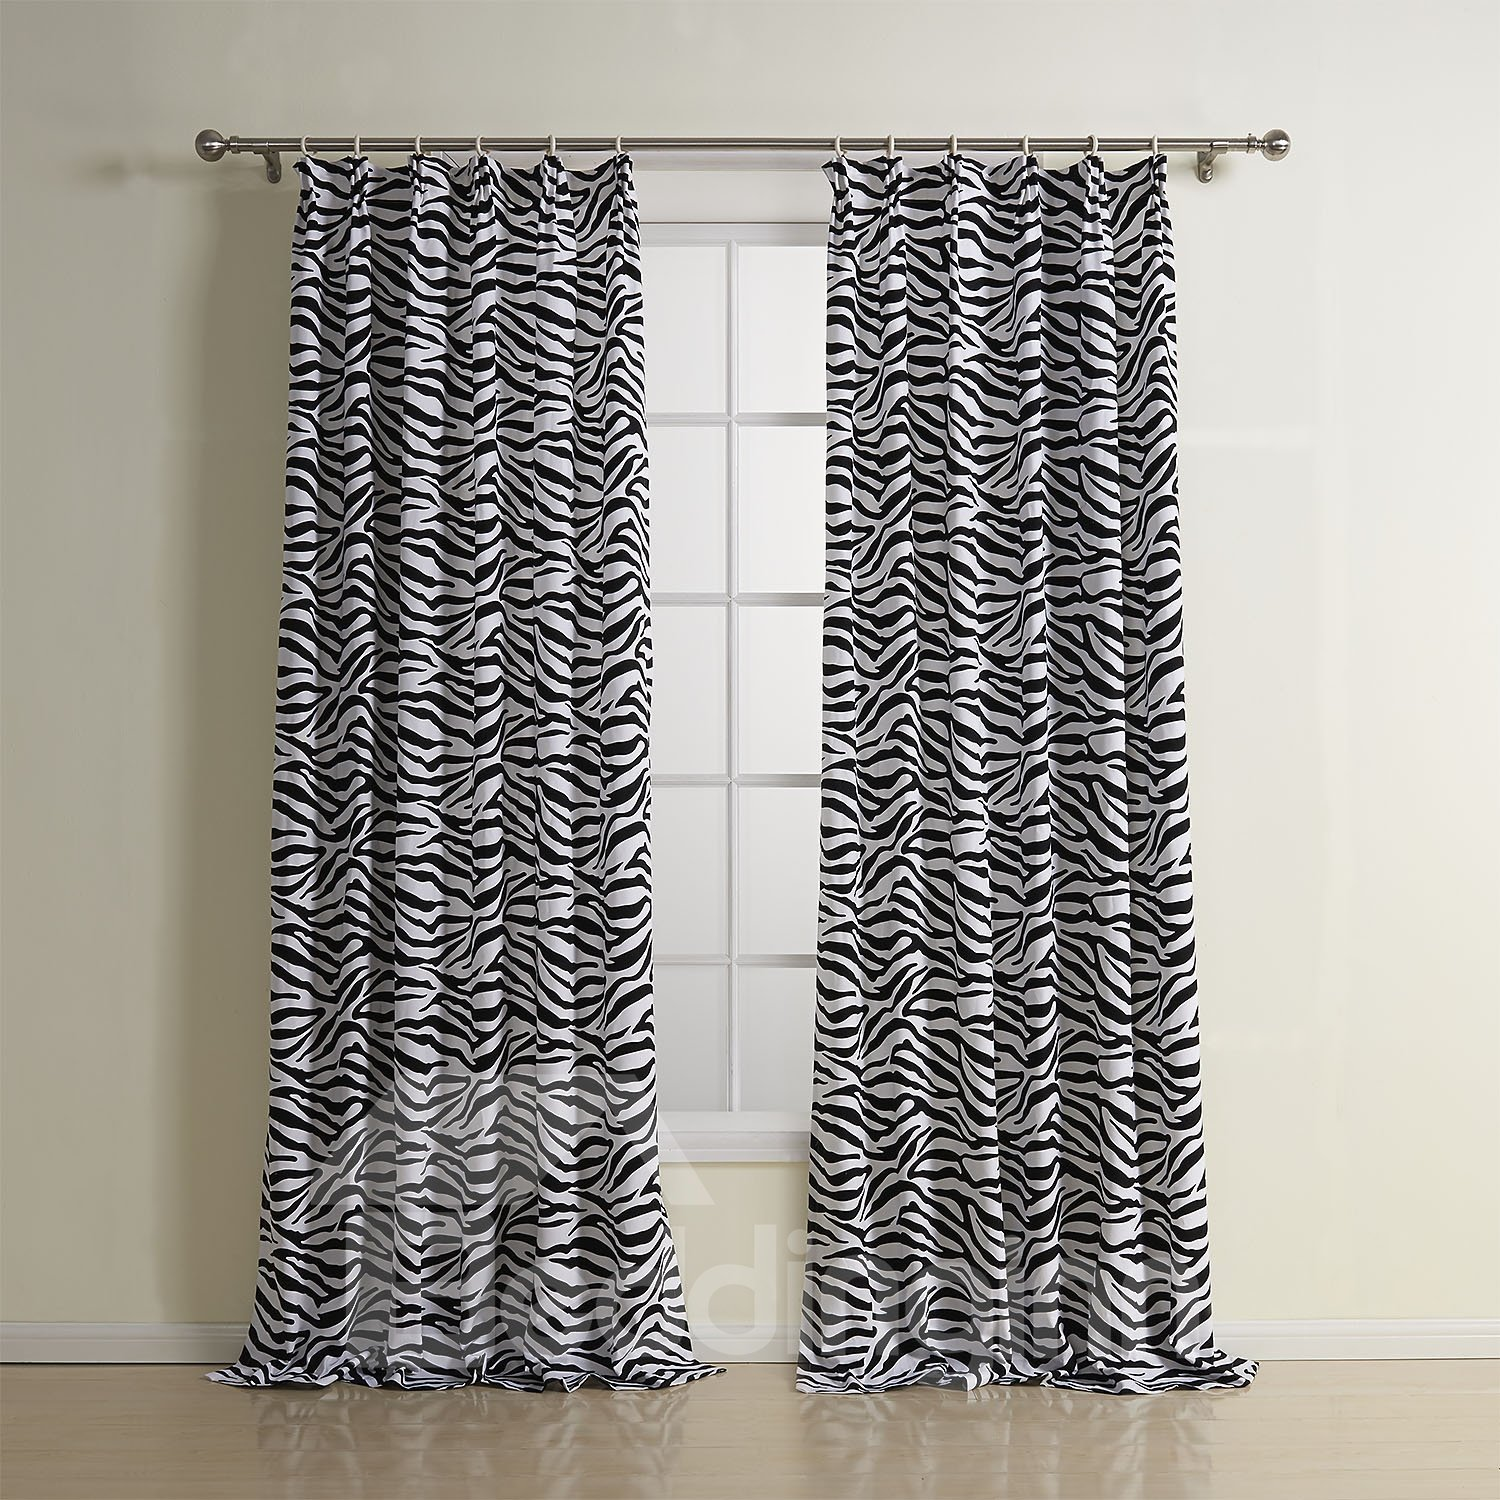 Black and White Block Cotton Double Pinch Pleat Custom Curtain